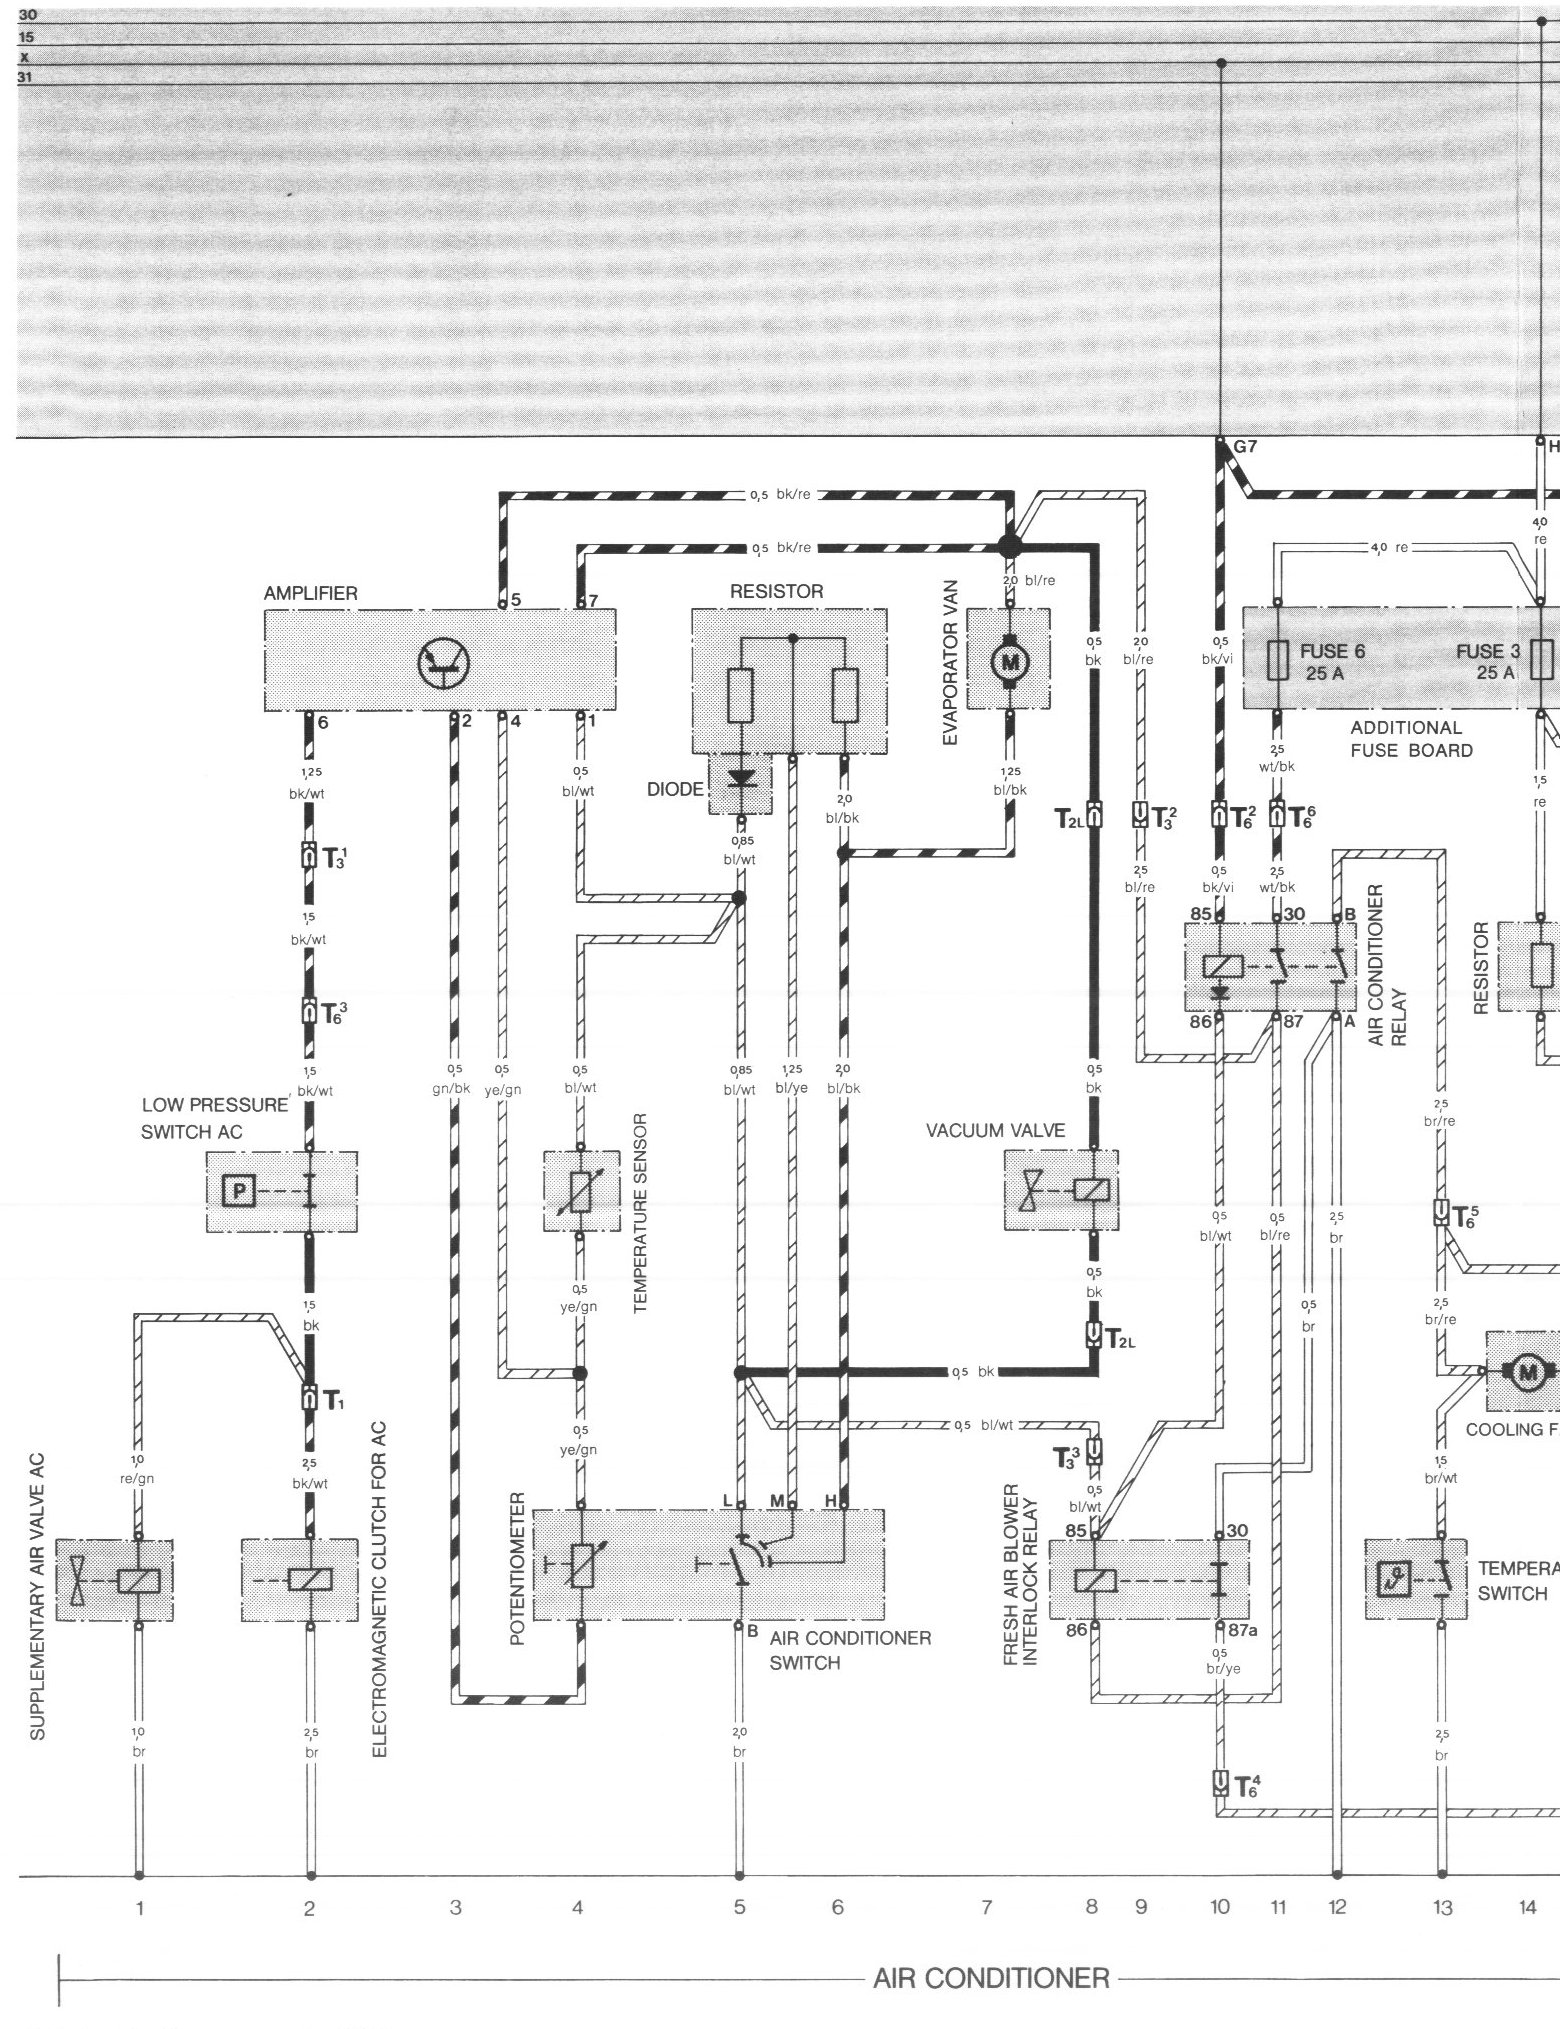 hight resolution of porsche wiring diagrams wiring diagram used how to read a porsche wiring diagram